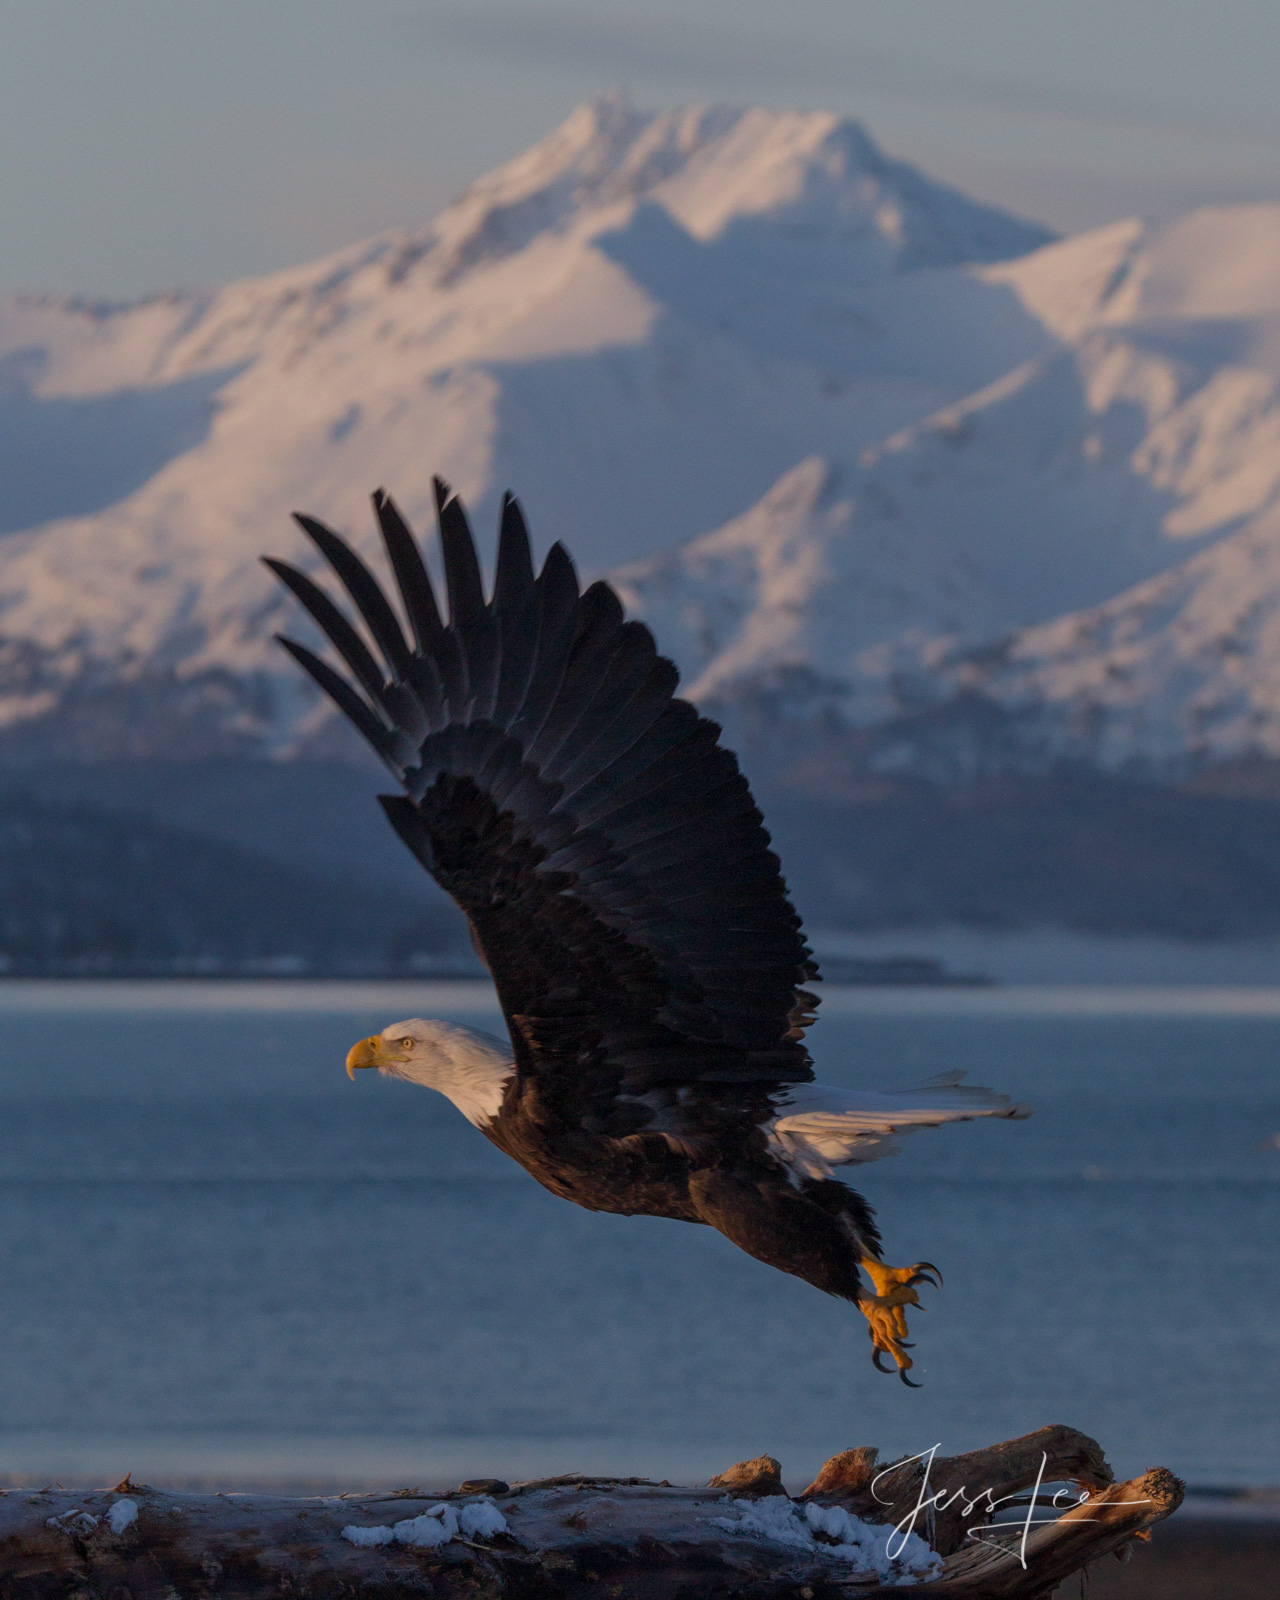 Bring home the power and beauty of the amazing fine art American Bald Eagle photograph Fly by by Jess Lee from his Wildlife Photography...